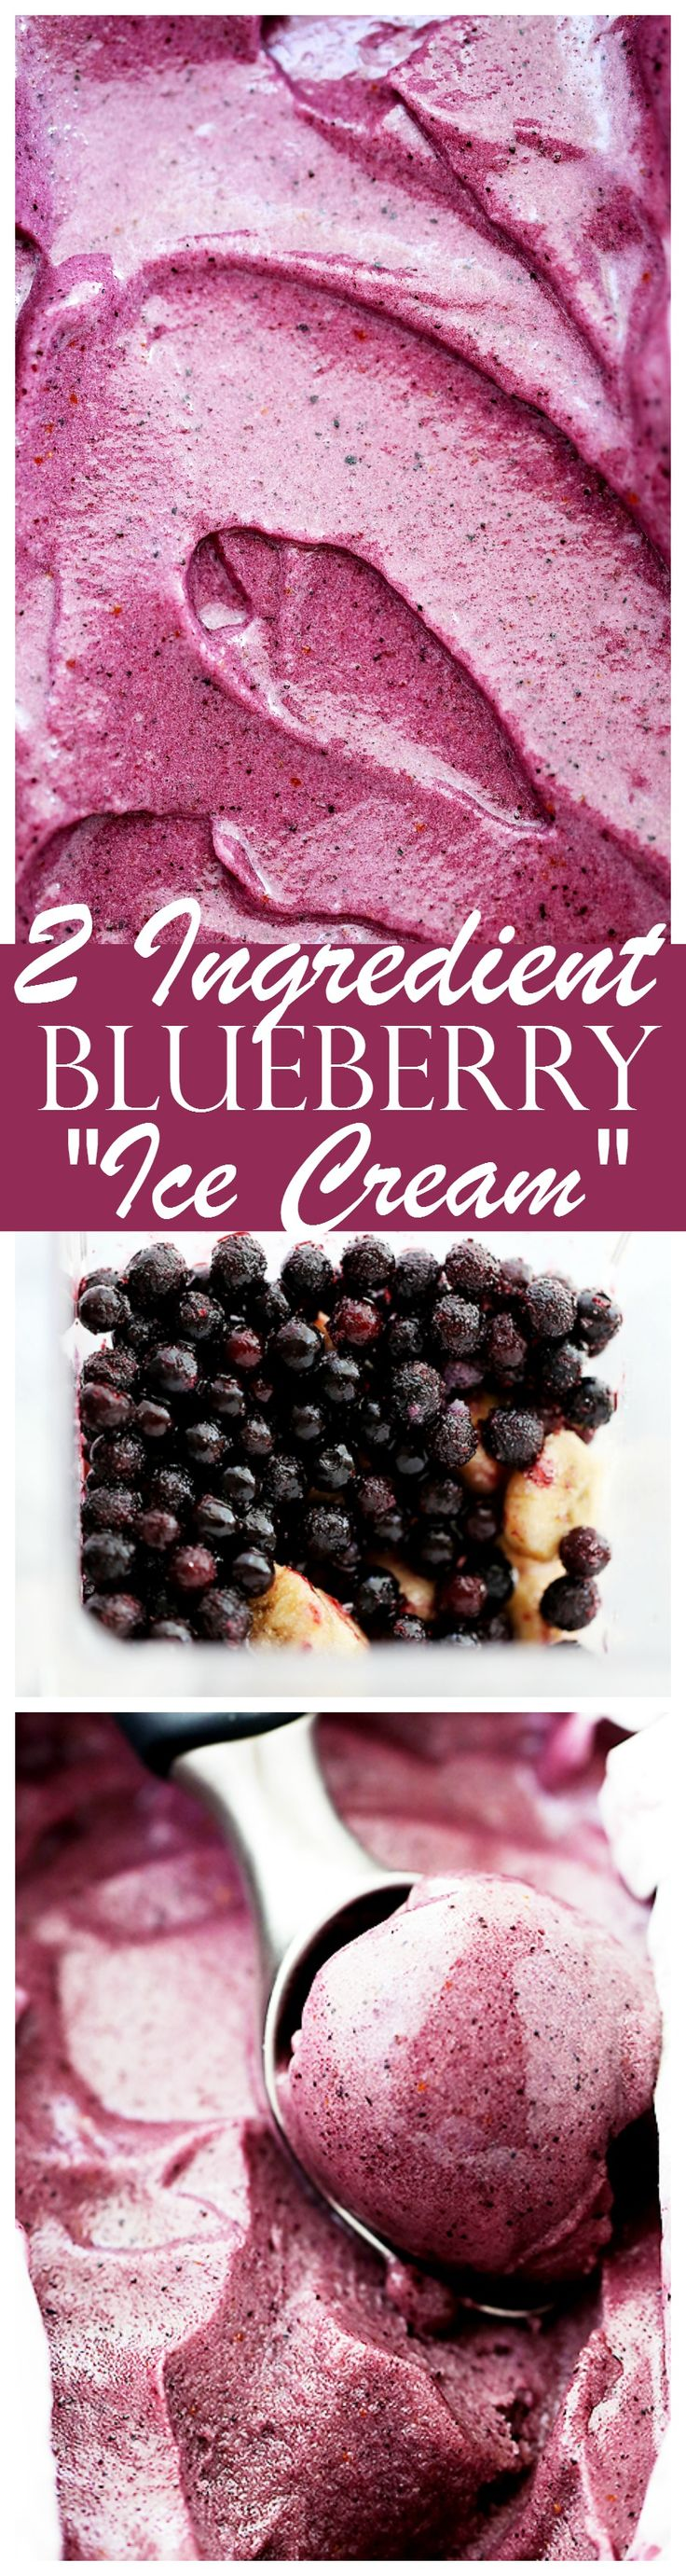 """2-Ingredient Blueberry Banana Ice Cream (Nice Cream) – Instantly satisfy an ice cream craving with this quick, easy, and healthy recipe for a delicious Blueberry Banana """"Ice Cream"""", also known as """"nice cream""""."""